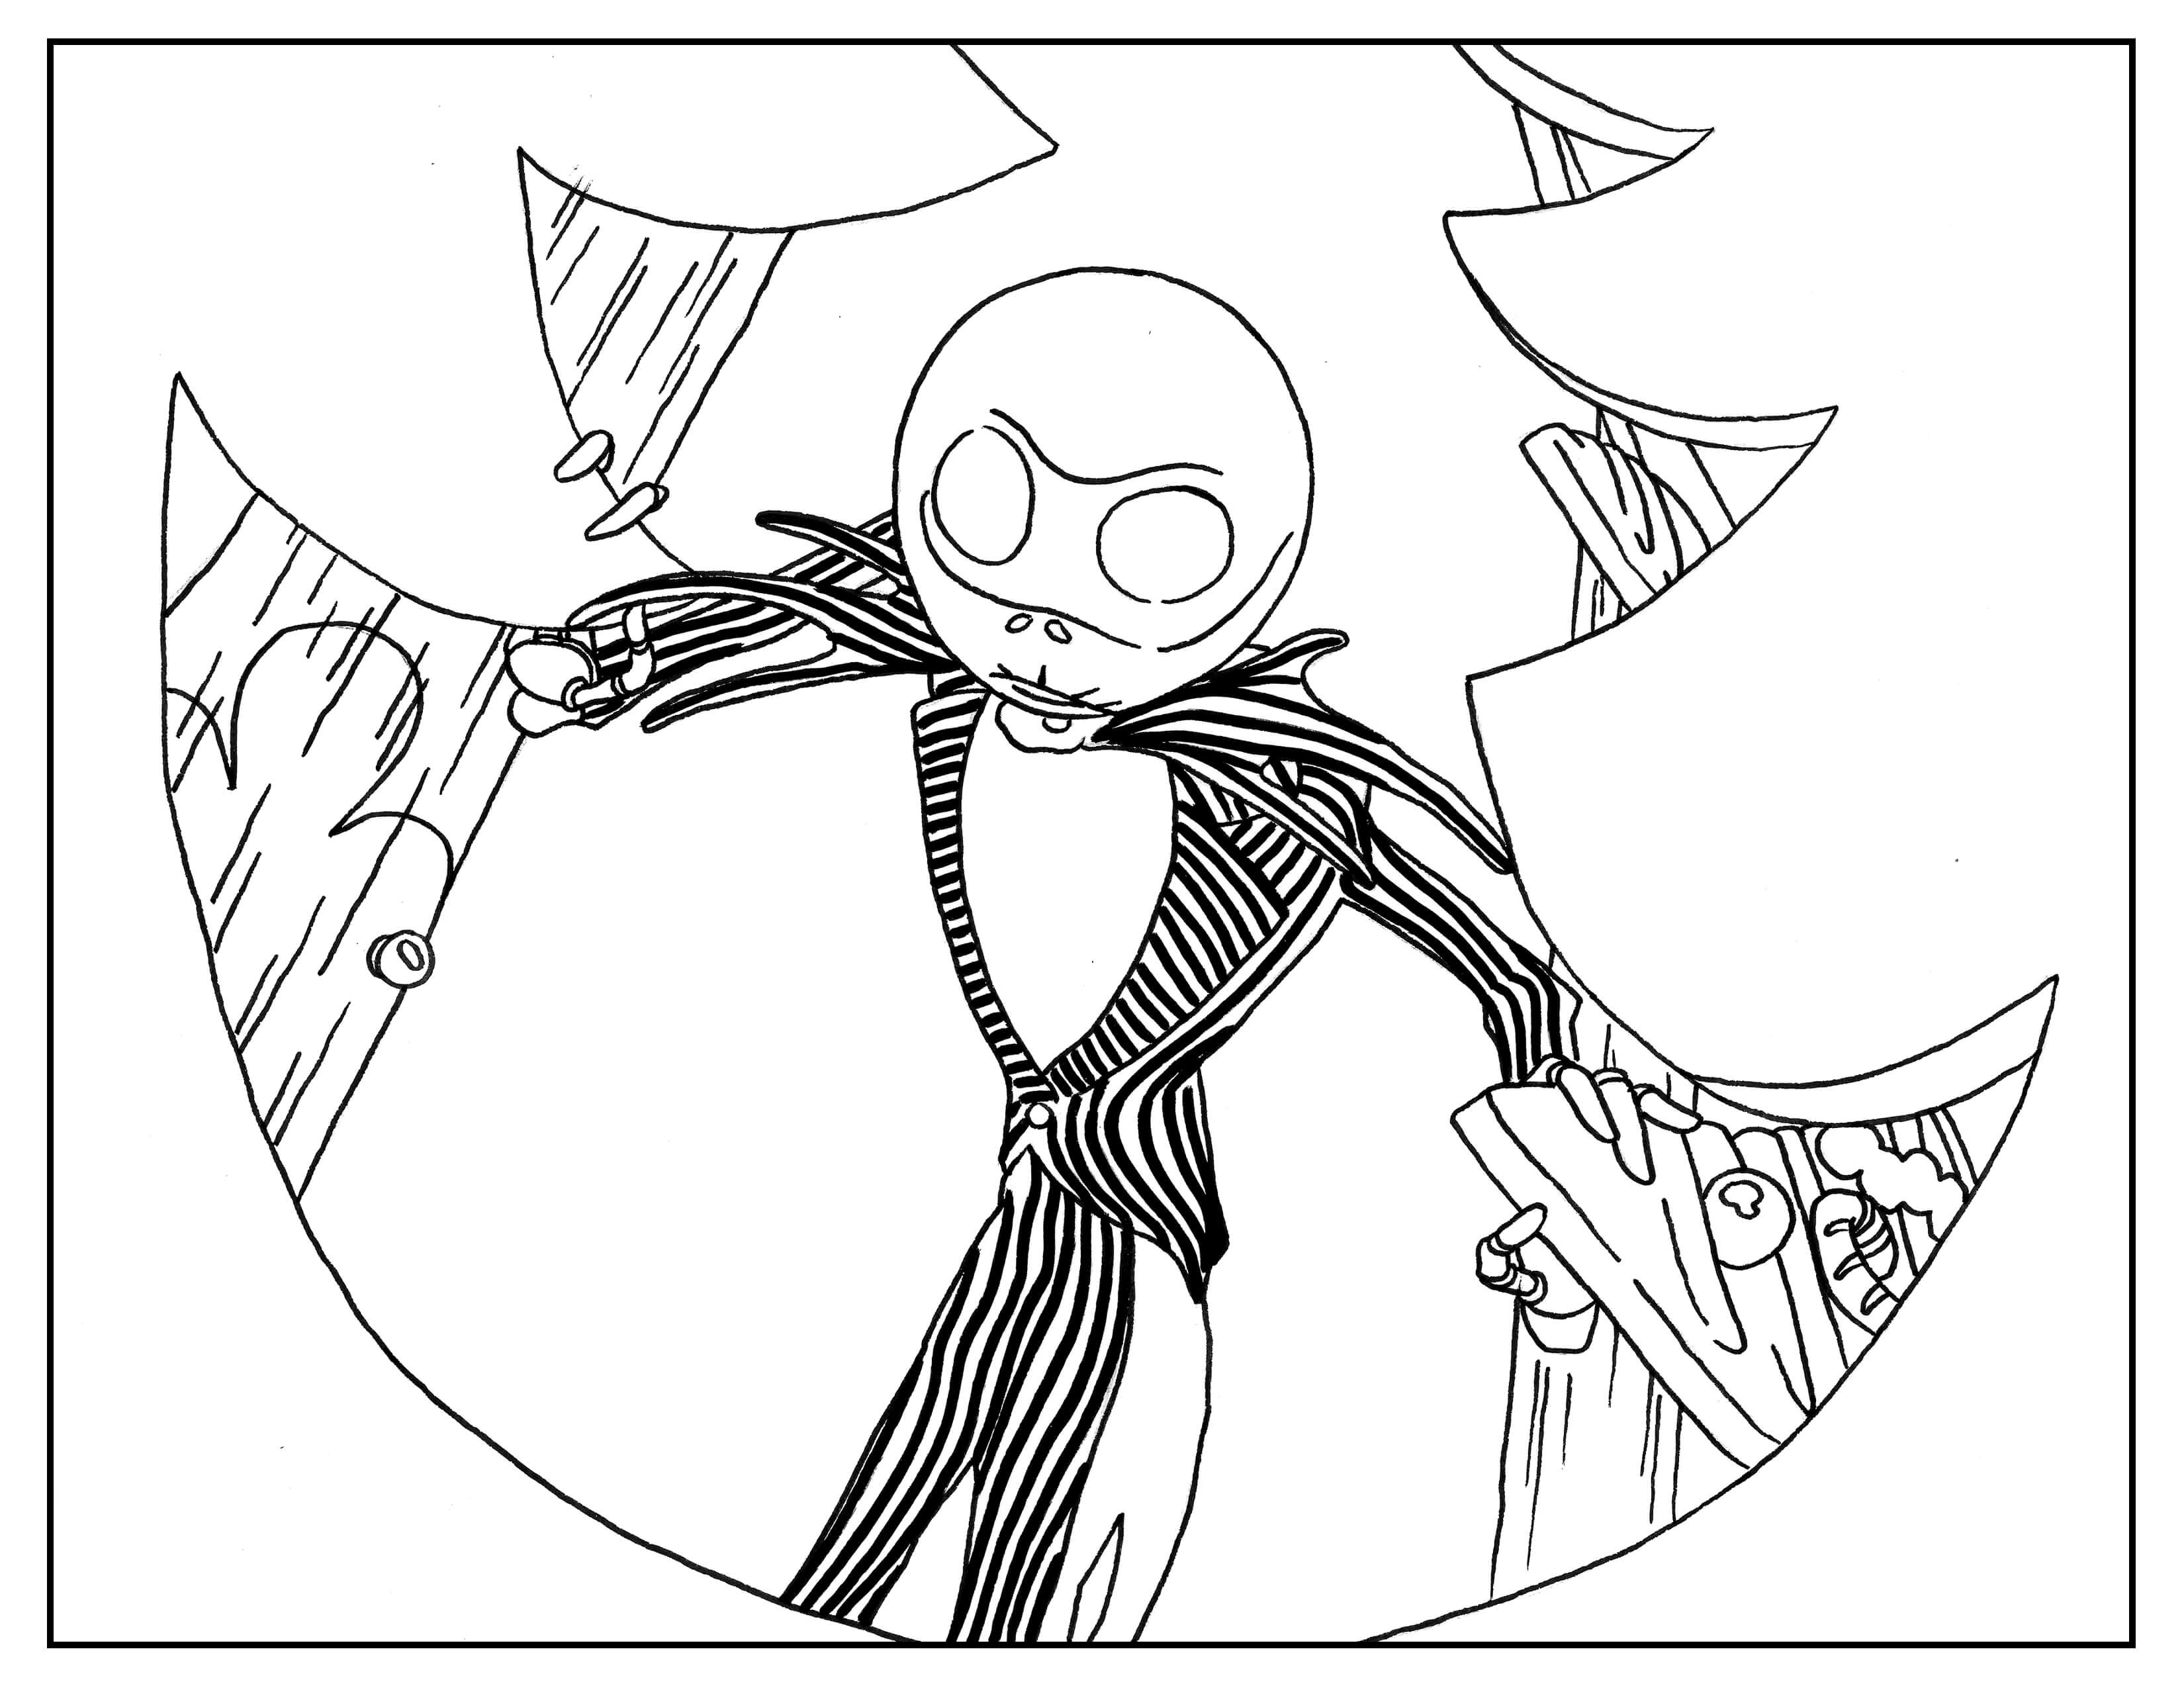 nightmare before christmas coloring free printable nightmare before christmas coloring pages christmas coloring before nightmare